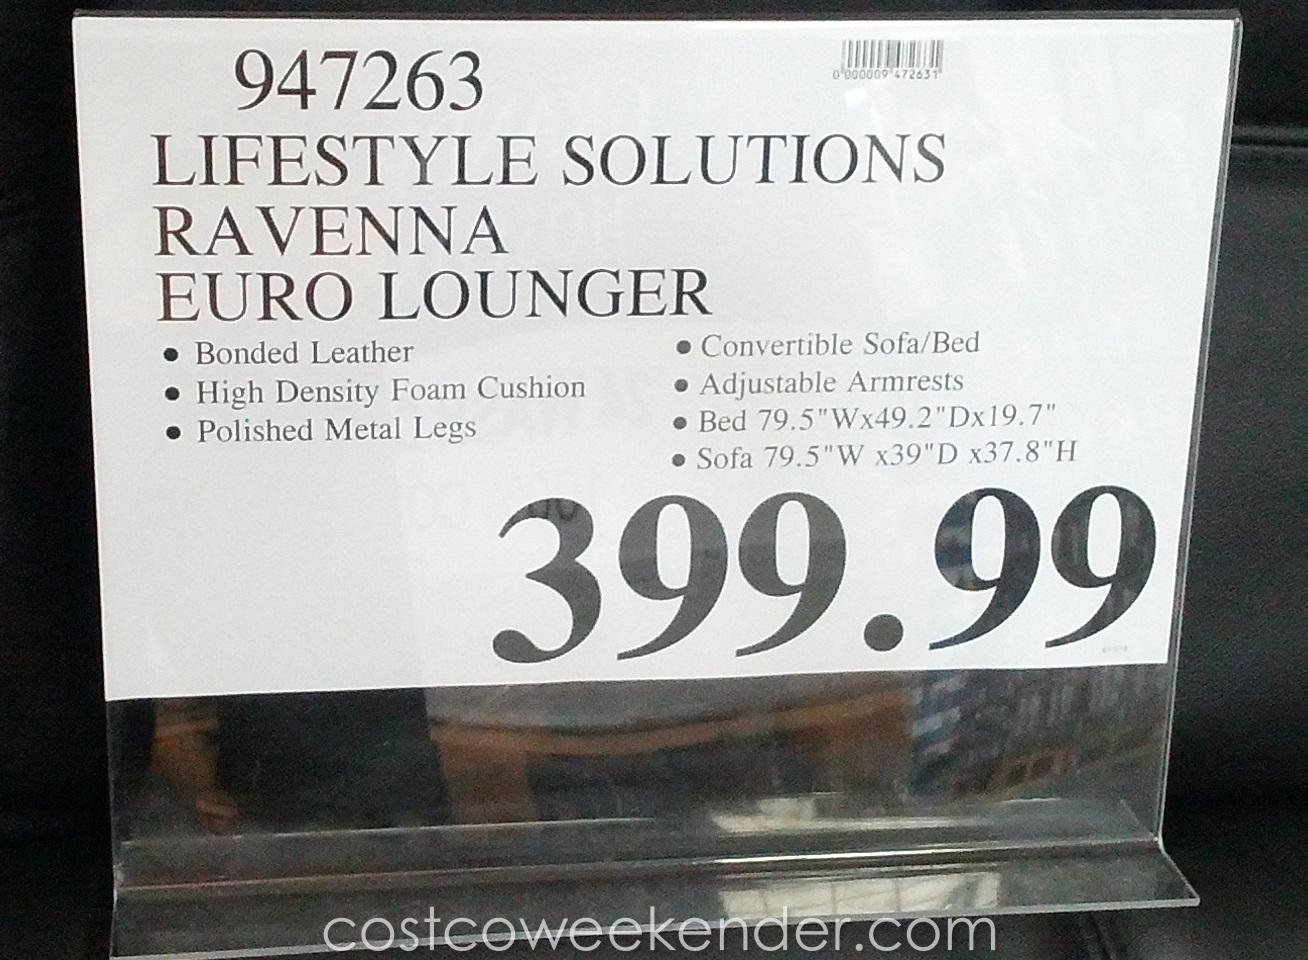 Leather Futon Costco Roselawnlutheran In Euro Loungers Photo 9 Of 20